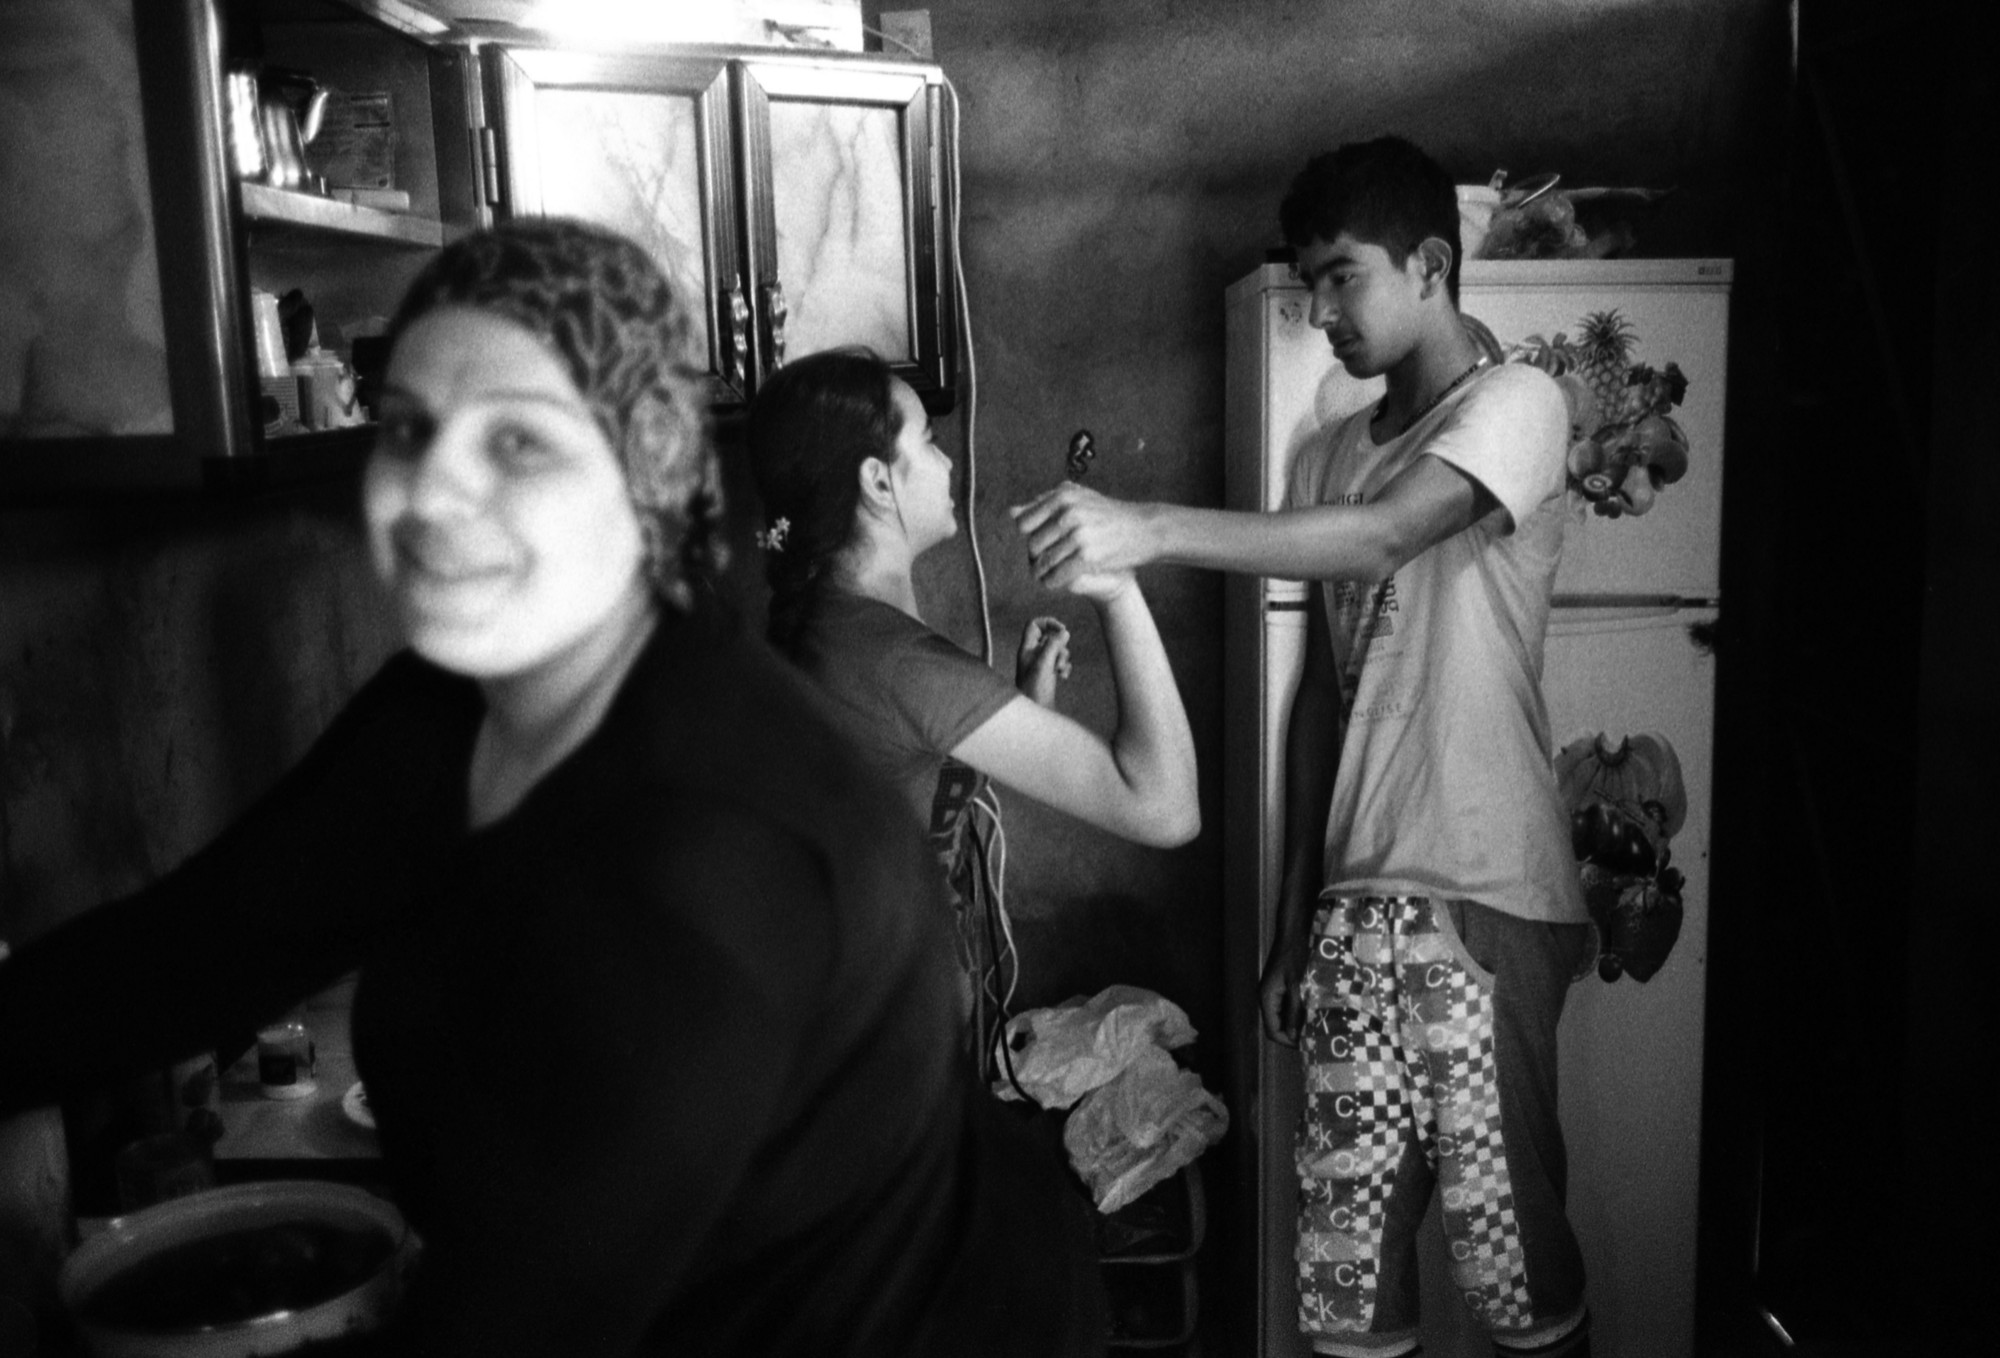 Eternally displaced darst projects medium april 2015 arbat iraq fadya hassa and lama inside the kitchen of their house in the camp kristyandbryce Choice Image